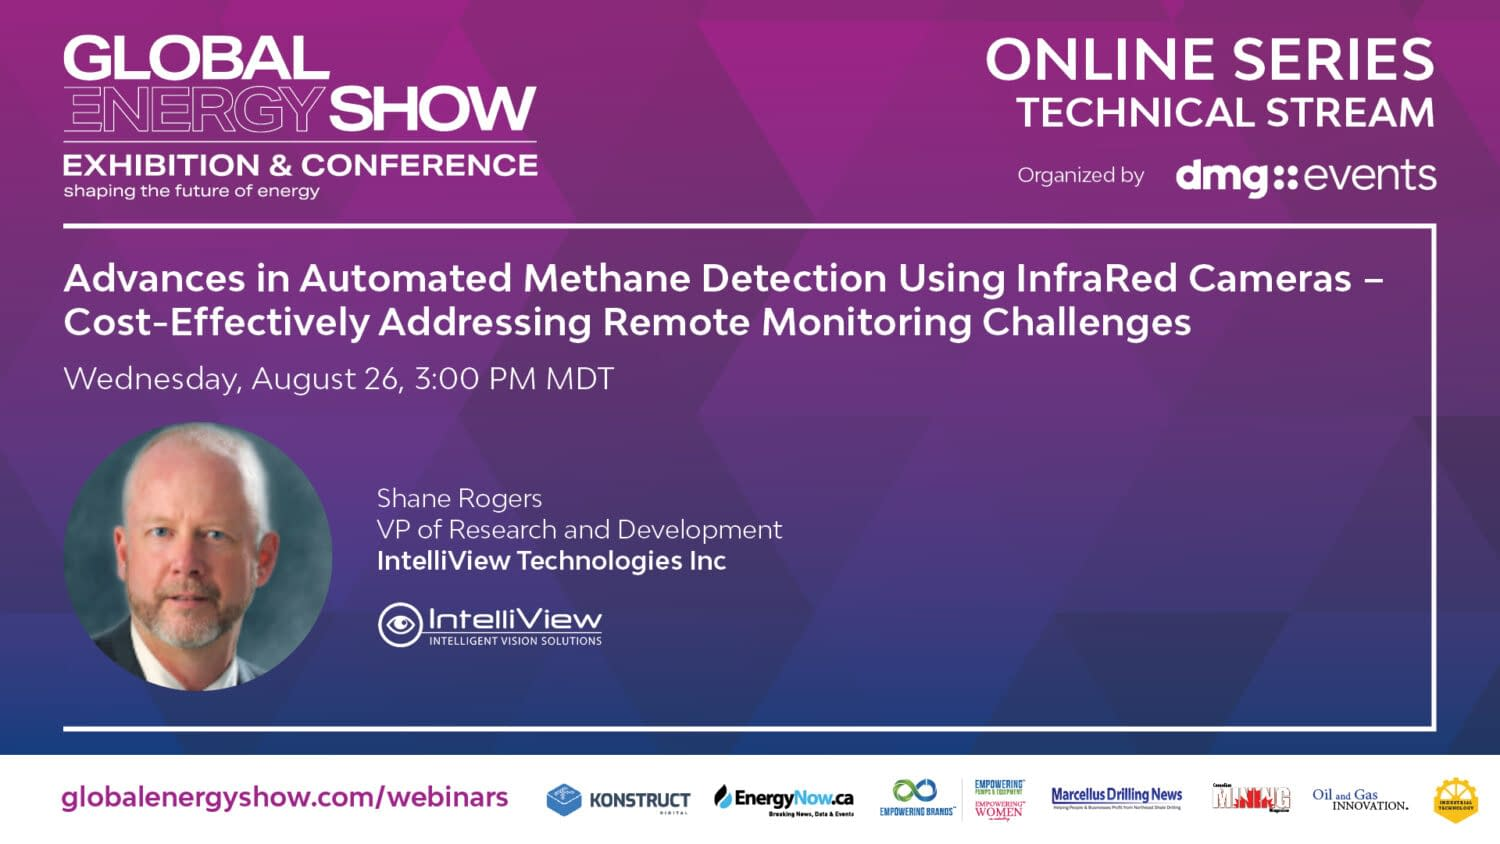 Global Energy Show Webinar - Advances in Automated Methane Detection Using Infrared Cameras